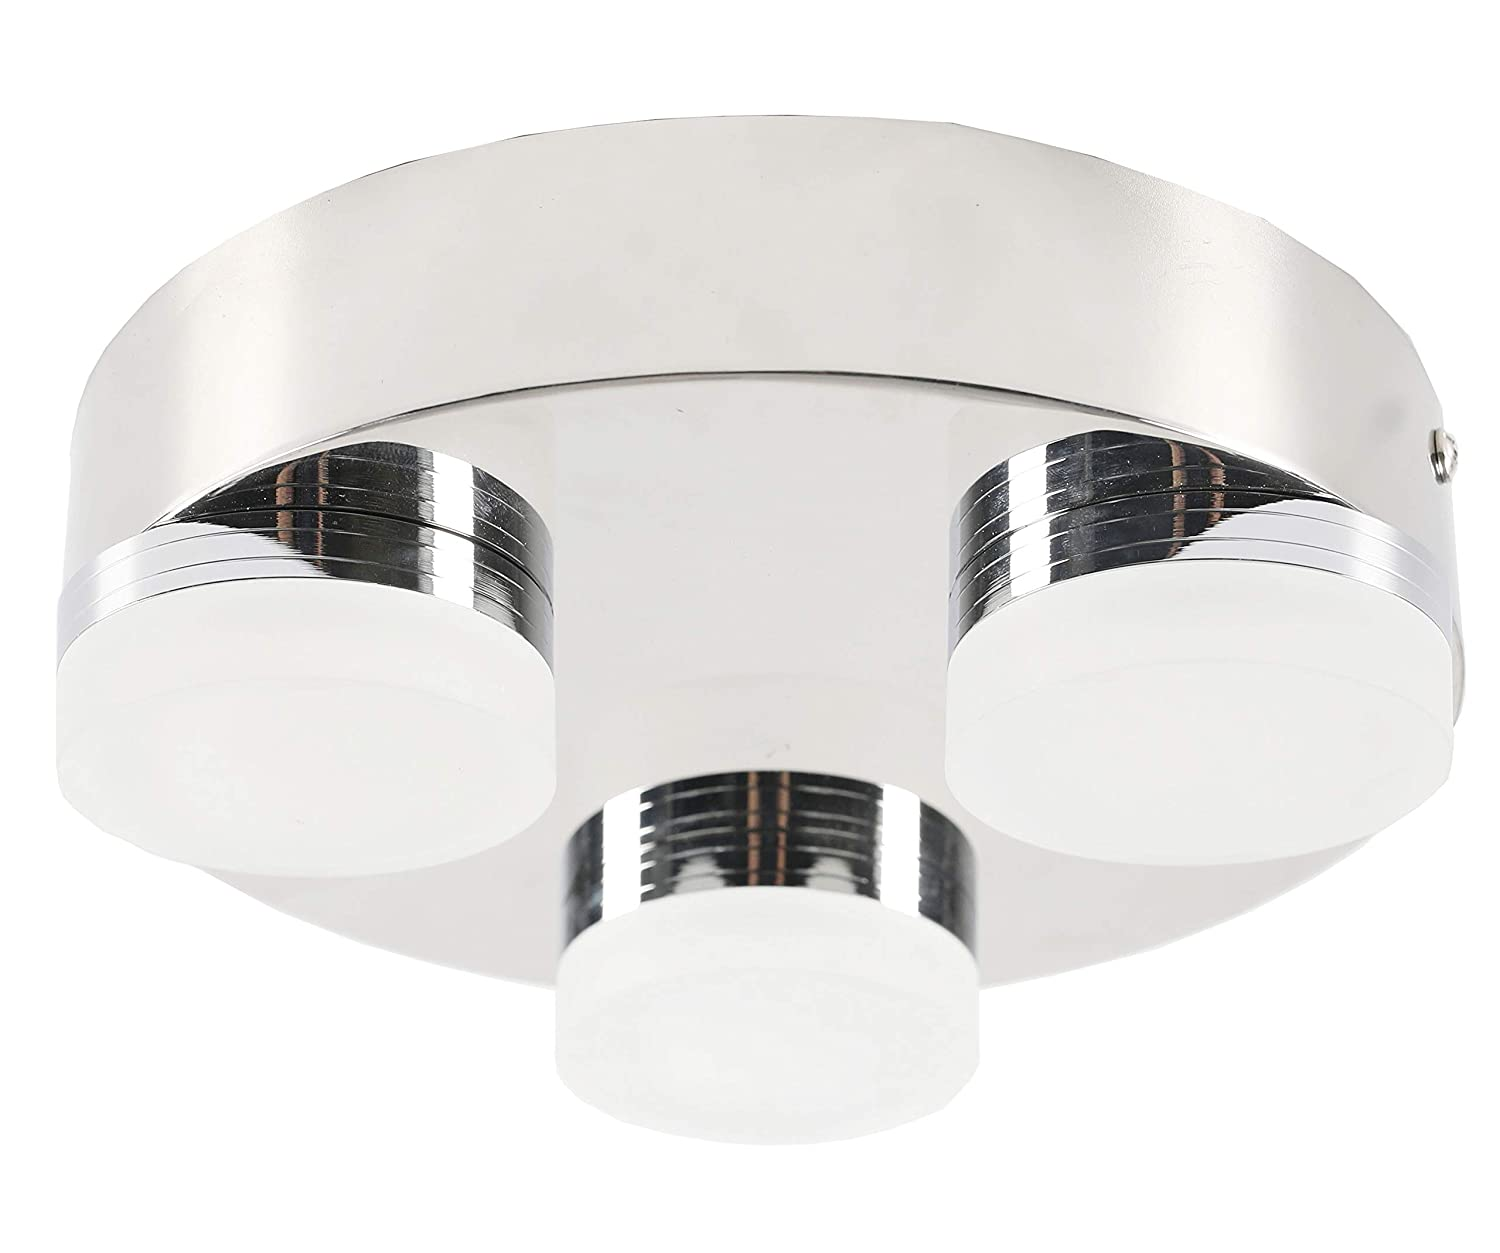 3 Round LED Bulbs Facon 12V RV Decorative LED Ceiling Dome Light with 3 LEDs Stainless Steel Base and Acrylic Lens Finished